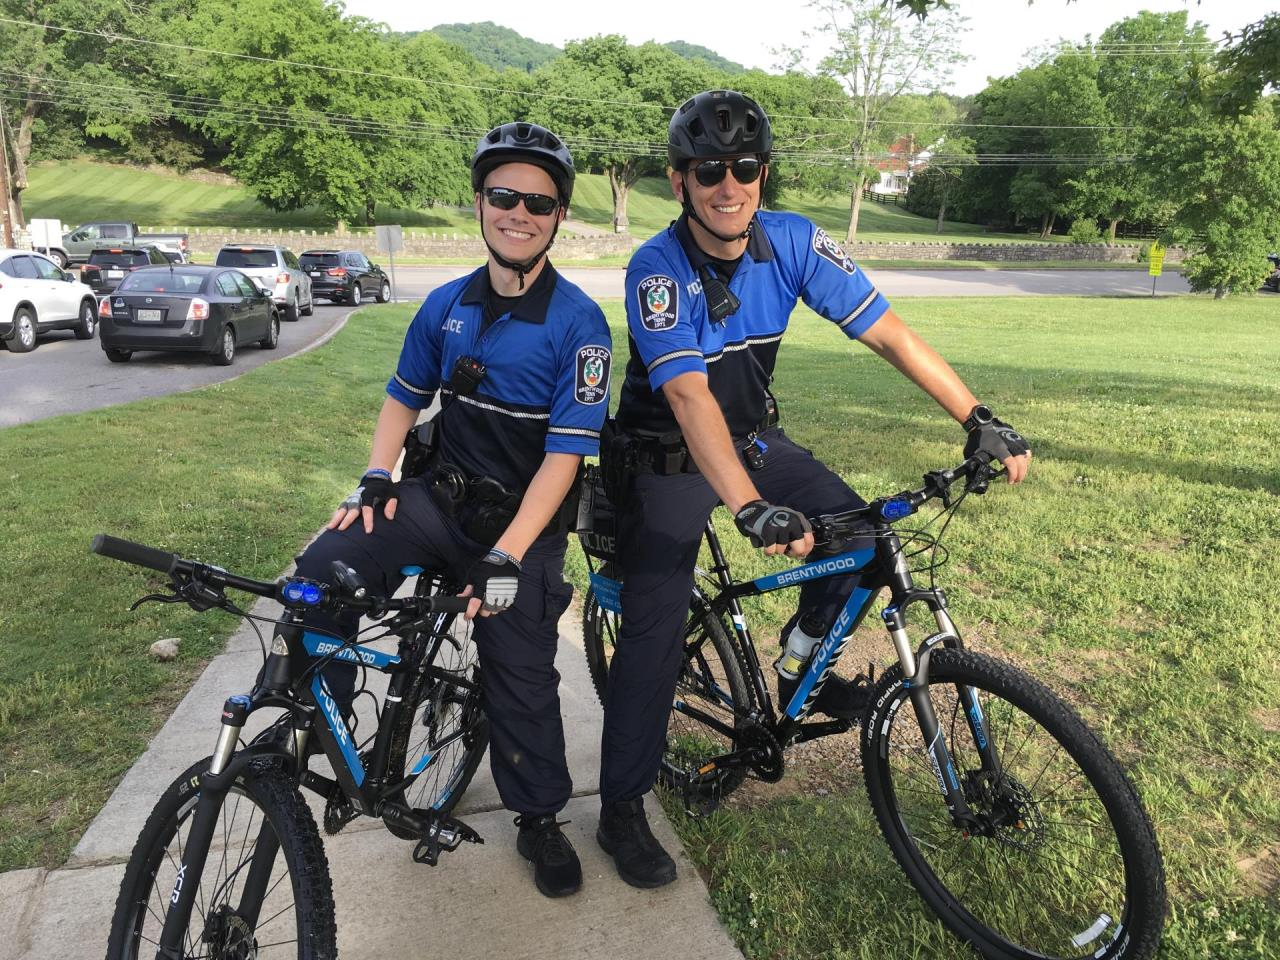 Photo of Officer Wickwire and Officer Townsend on Bike Patrol